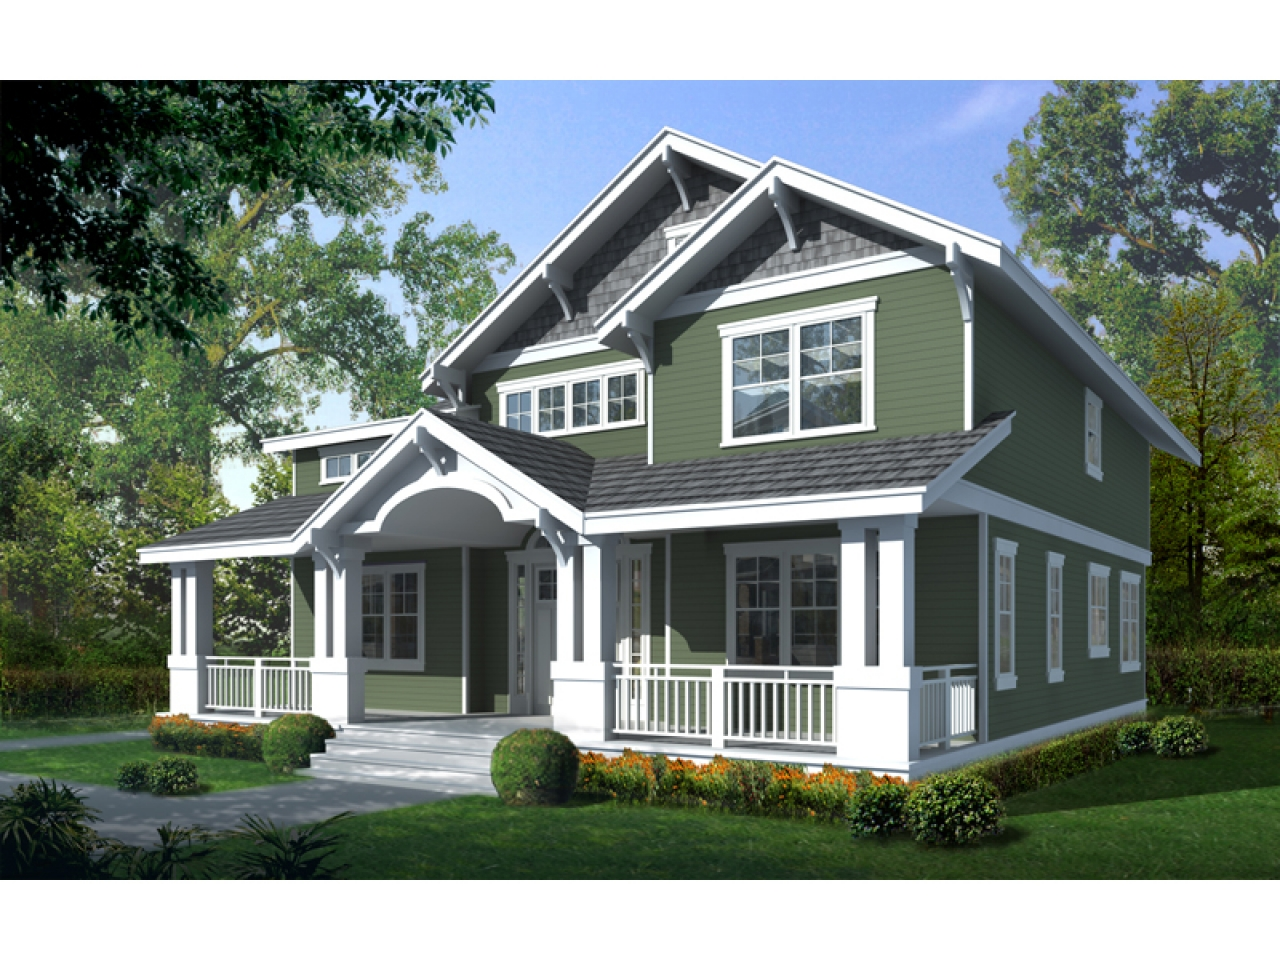 Basement laundry rooms, modern craftsman house plans two sto.